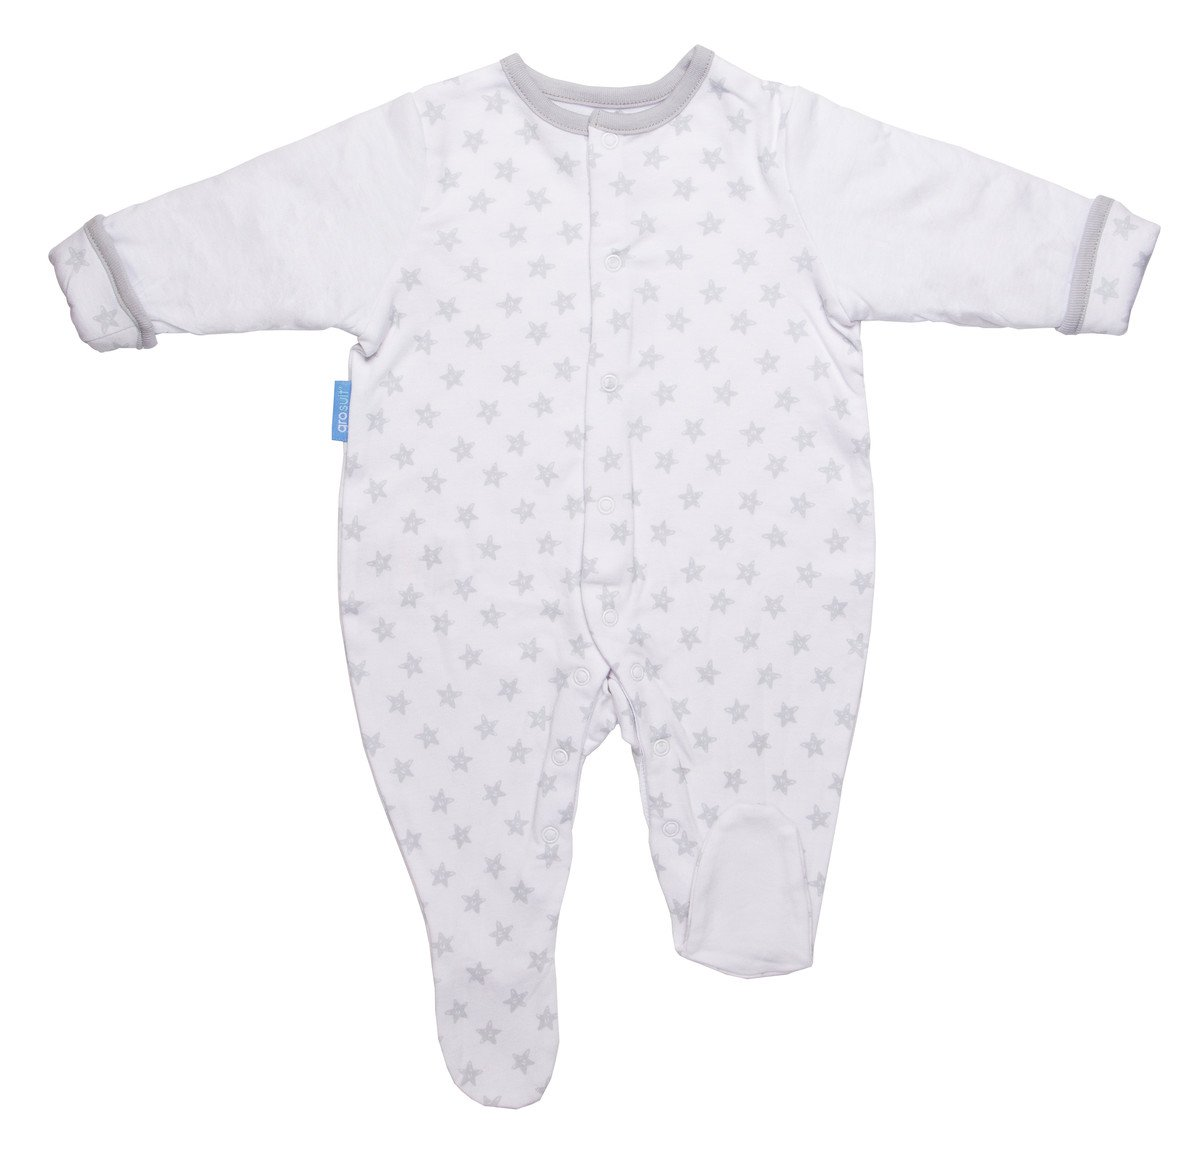 Little Star Twin Grosuit Pack 12-18m The Gro Company BBA13918